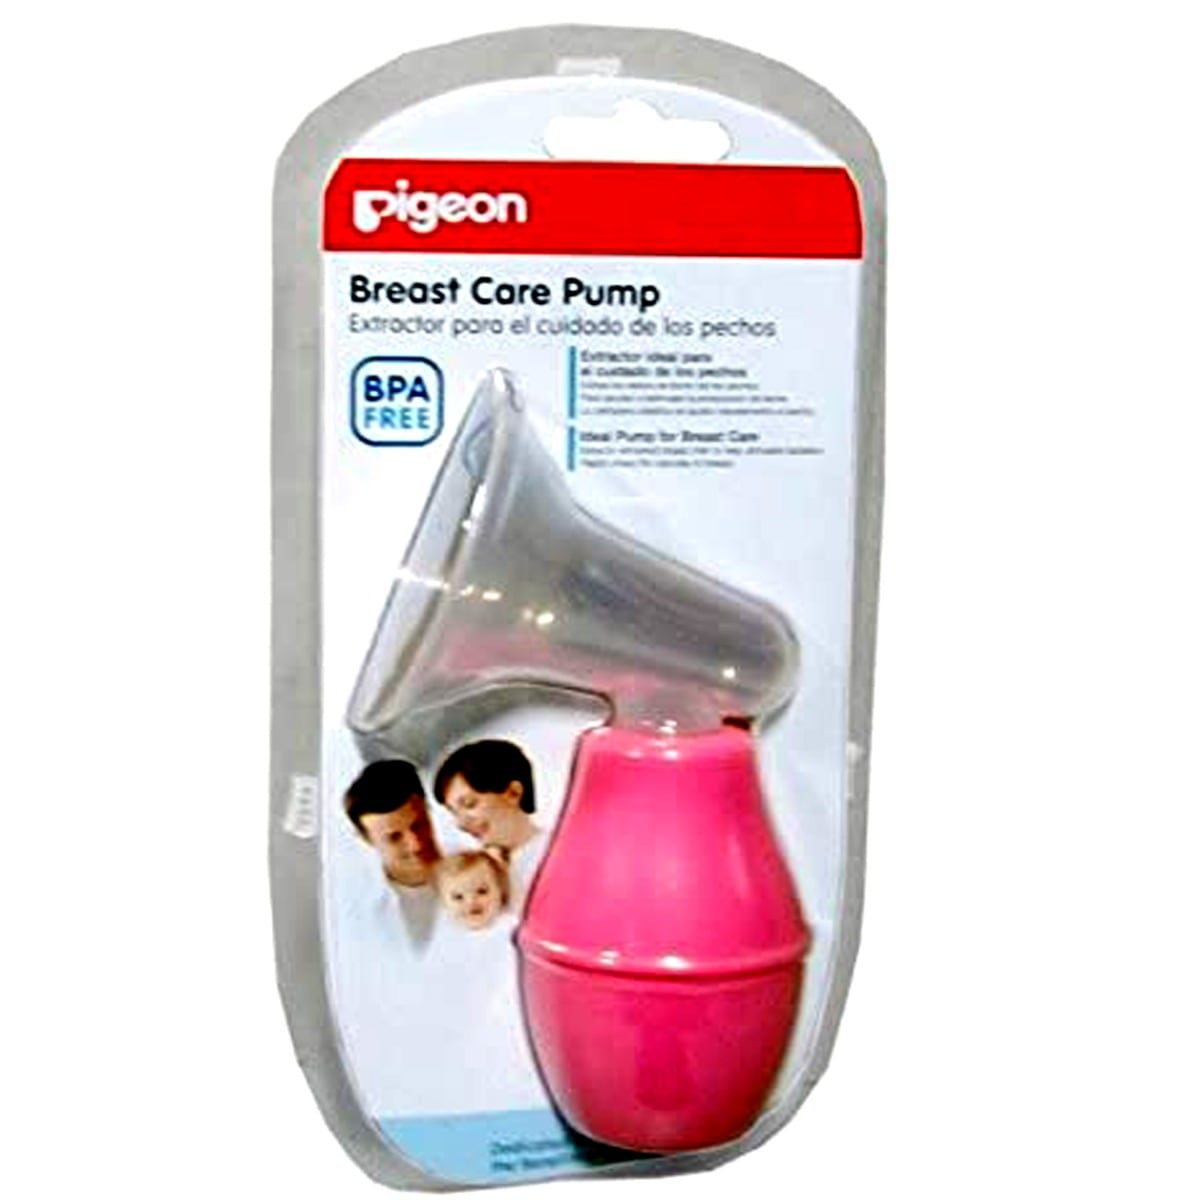 Pigeon Breast Pump, 1 Count, Pack of 1